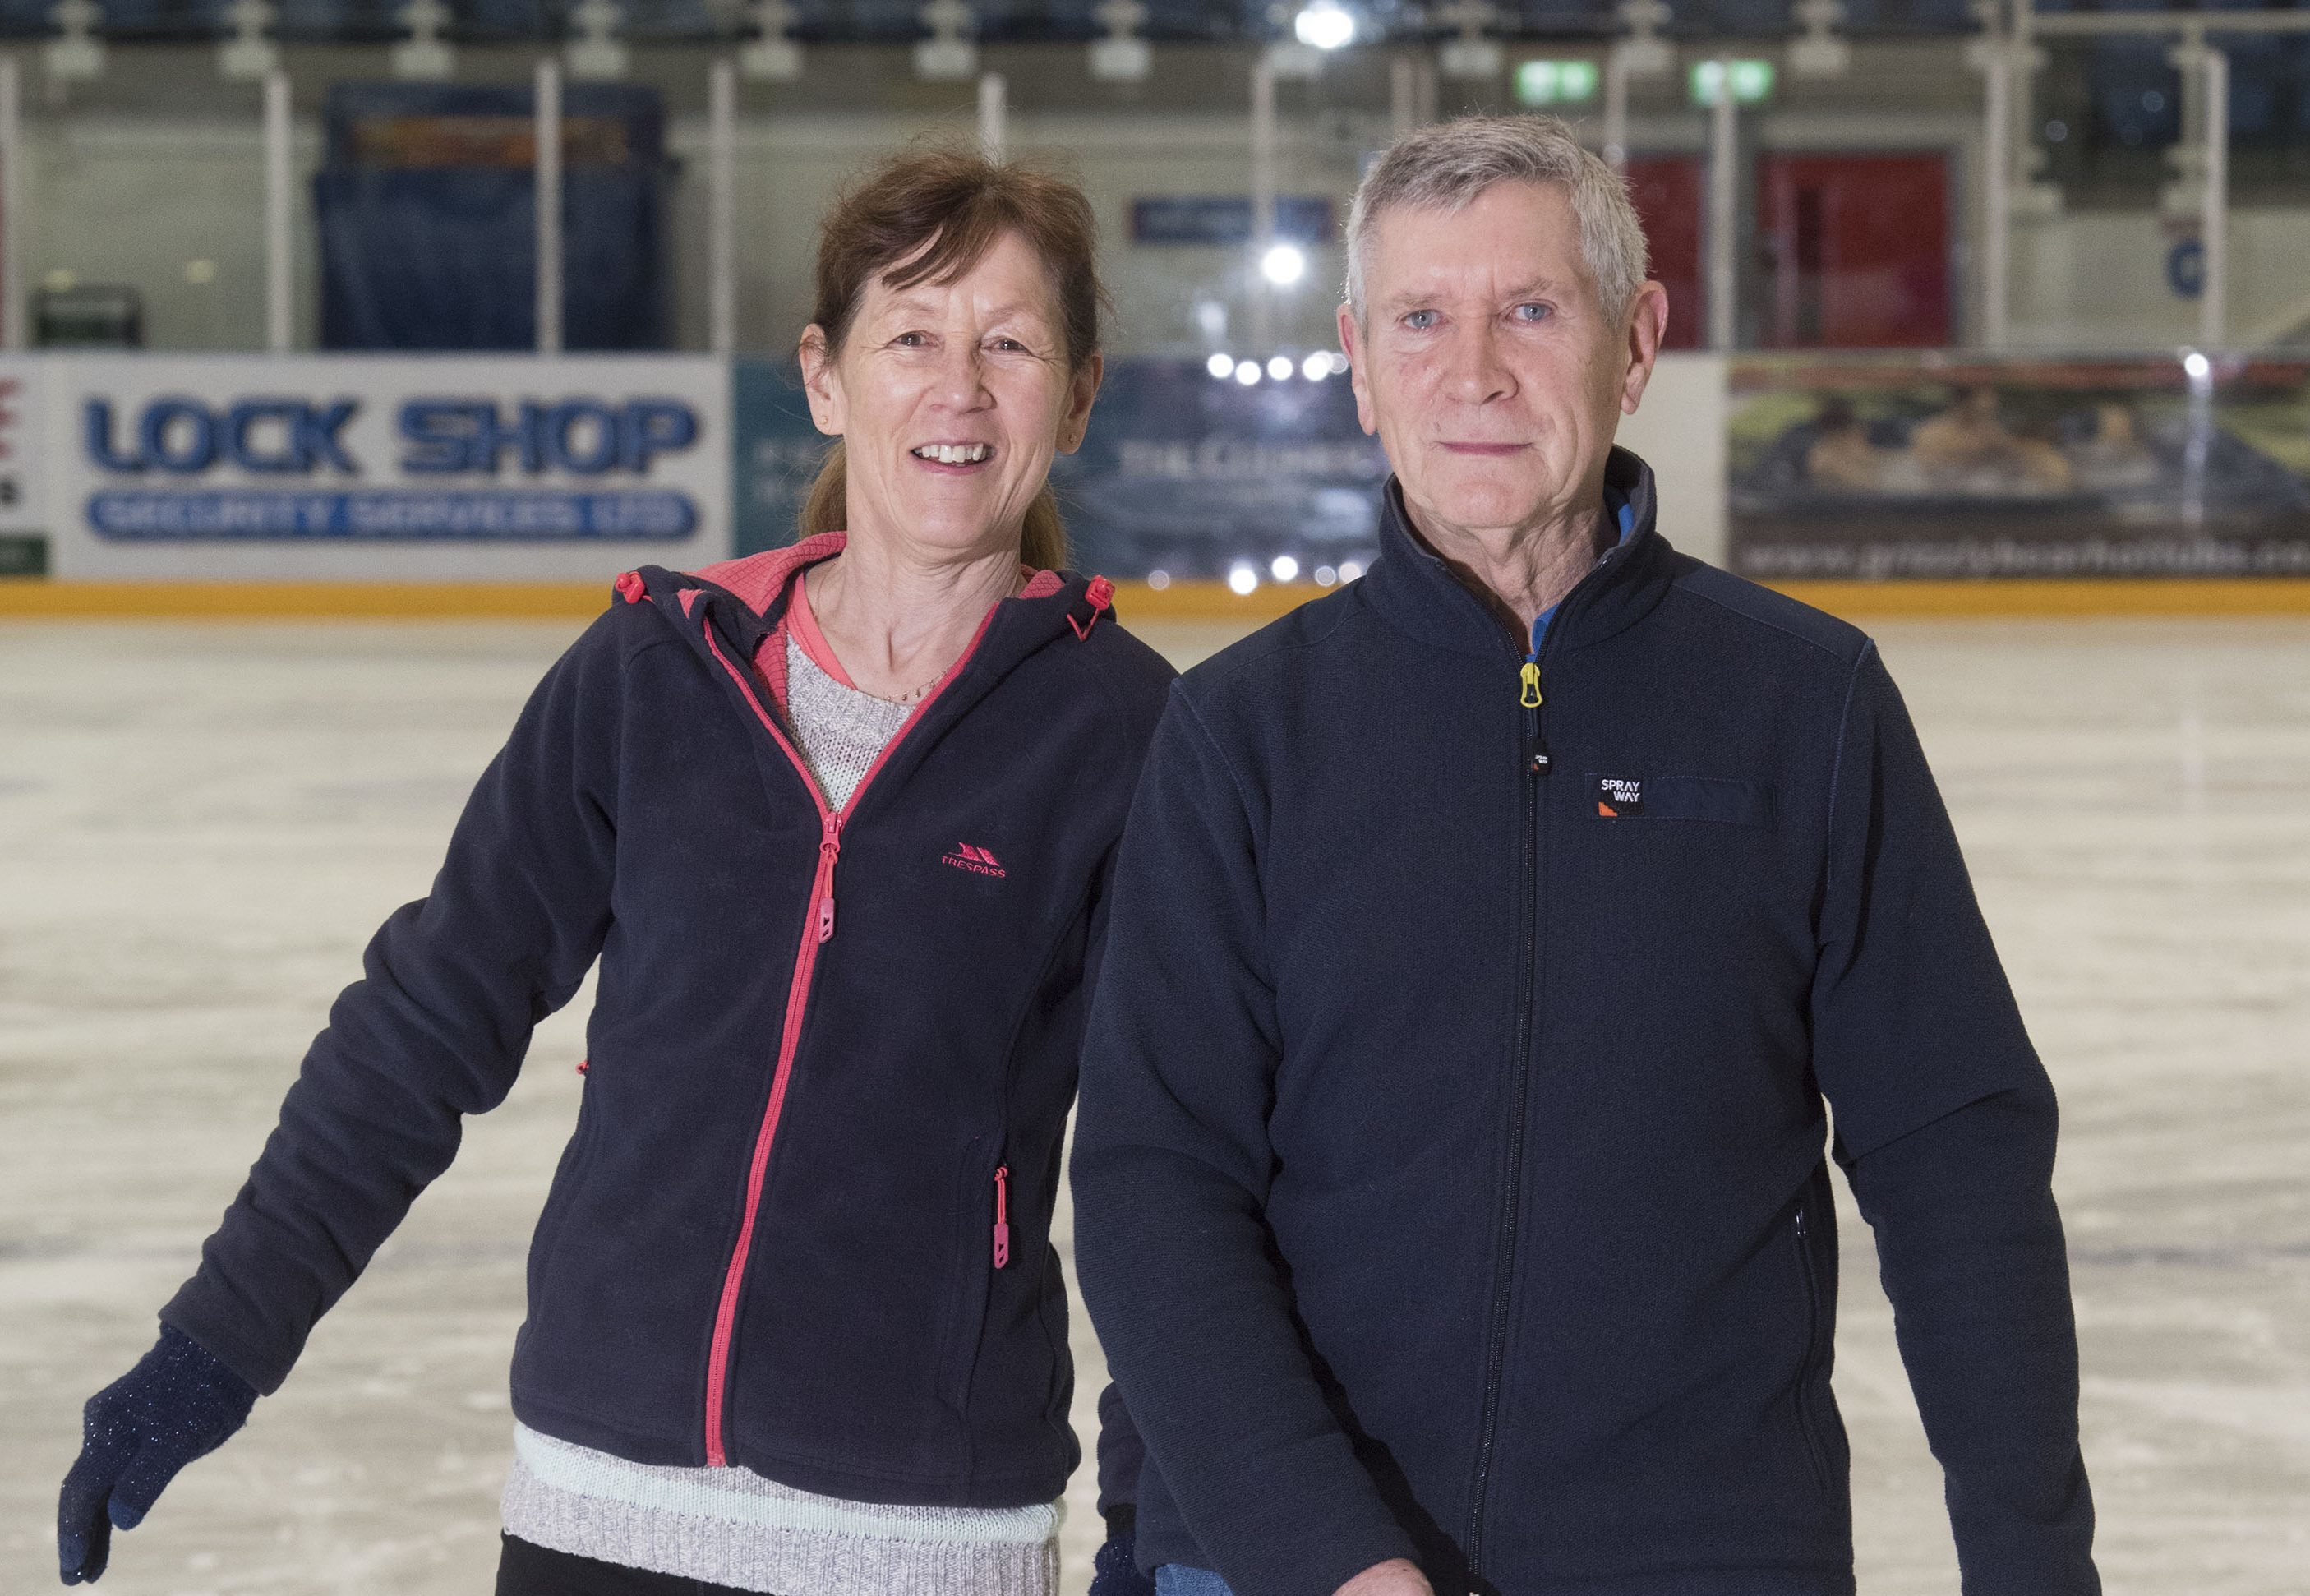 Learn to skate class members Will Rowbottom and Ann Reed (Alan Richardson/ Pix-AR.co.uk)